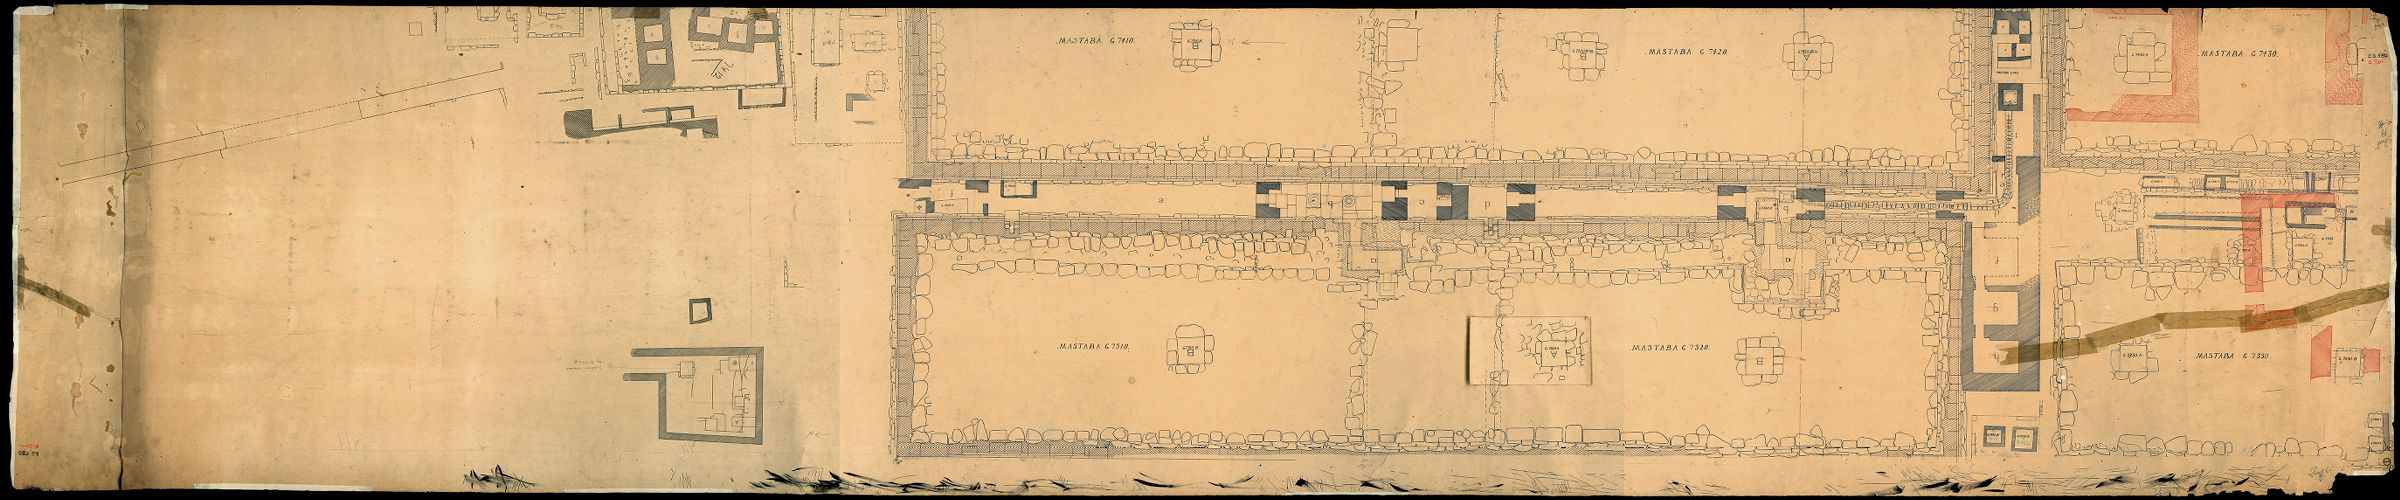 Maps and plans: Plan of cemetery G 7000: portion of G 7310-7320, G 7410-7420, G 7330-7340, G 7430-7440